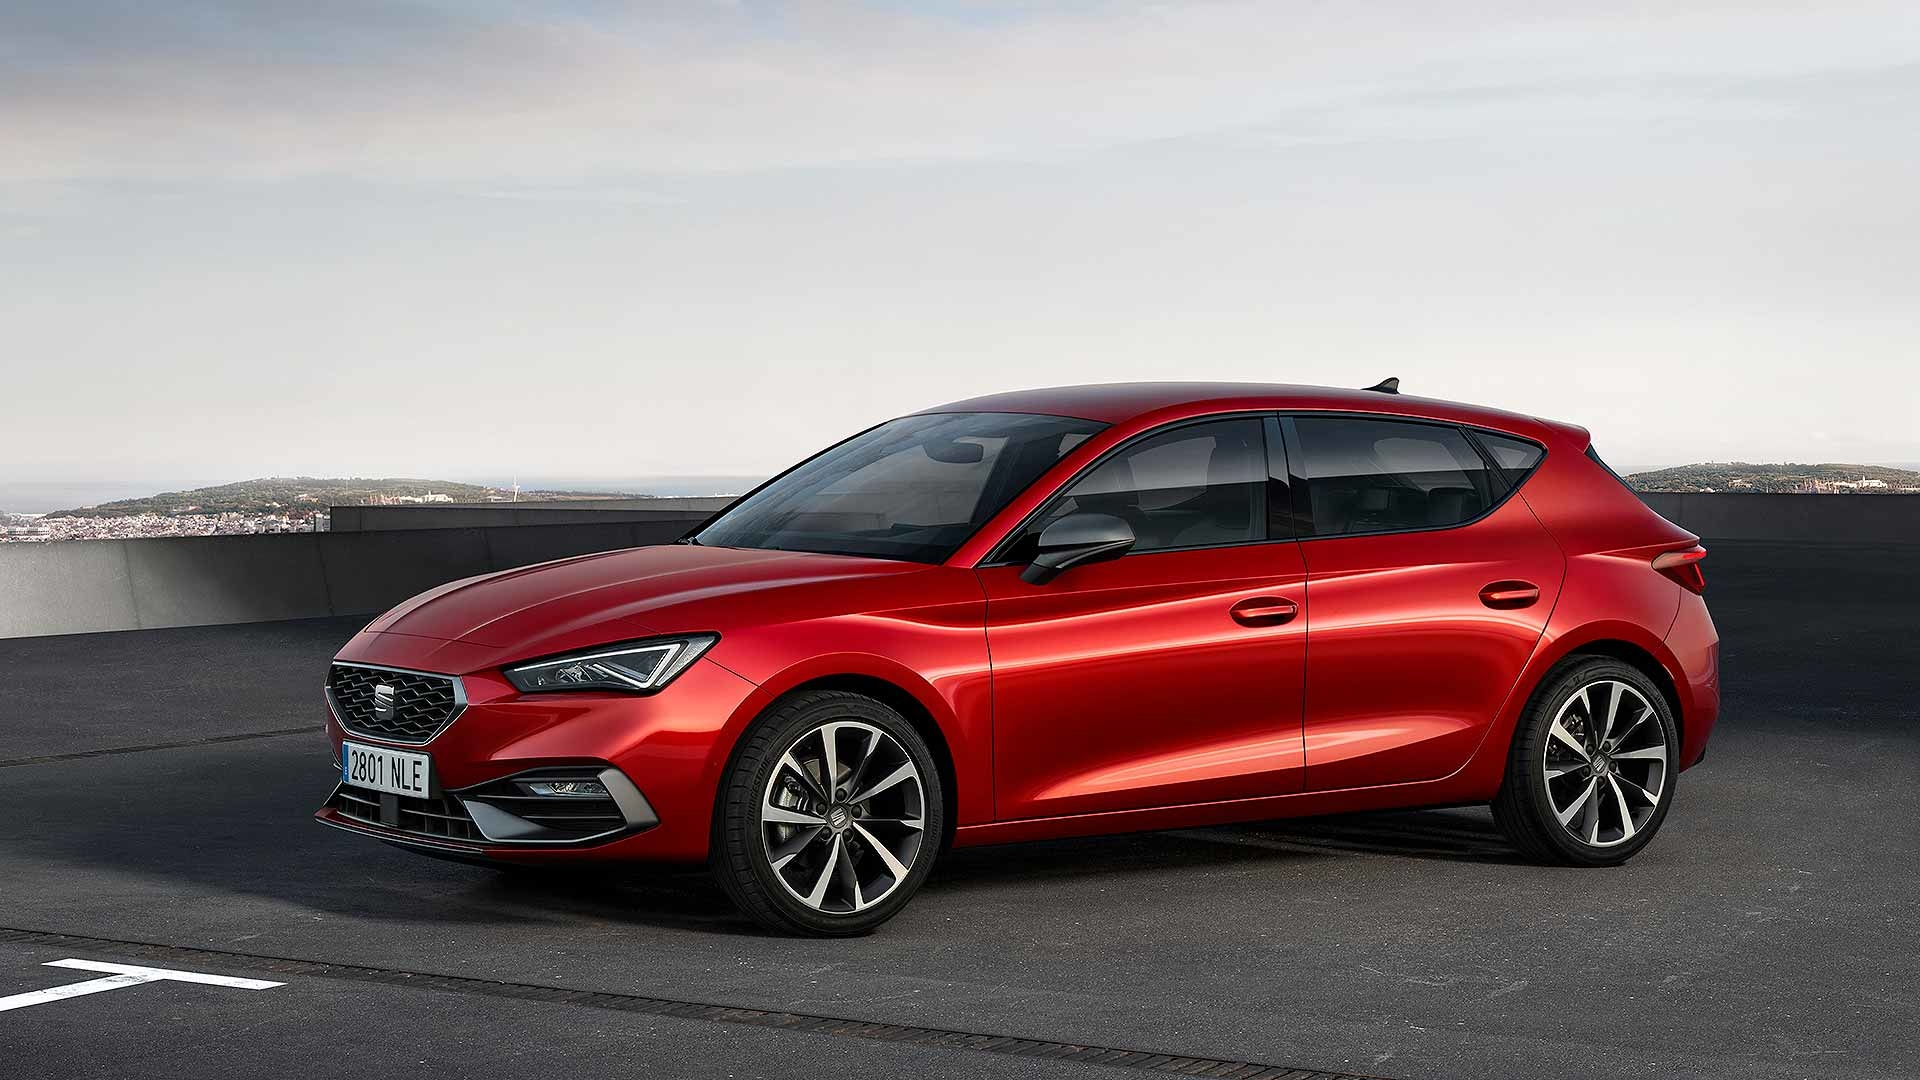 foto de 2020 Seat Leon revealed: Spanish Golf goes hybrid Motoring Research